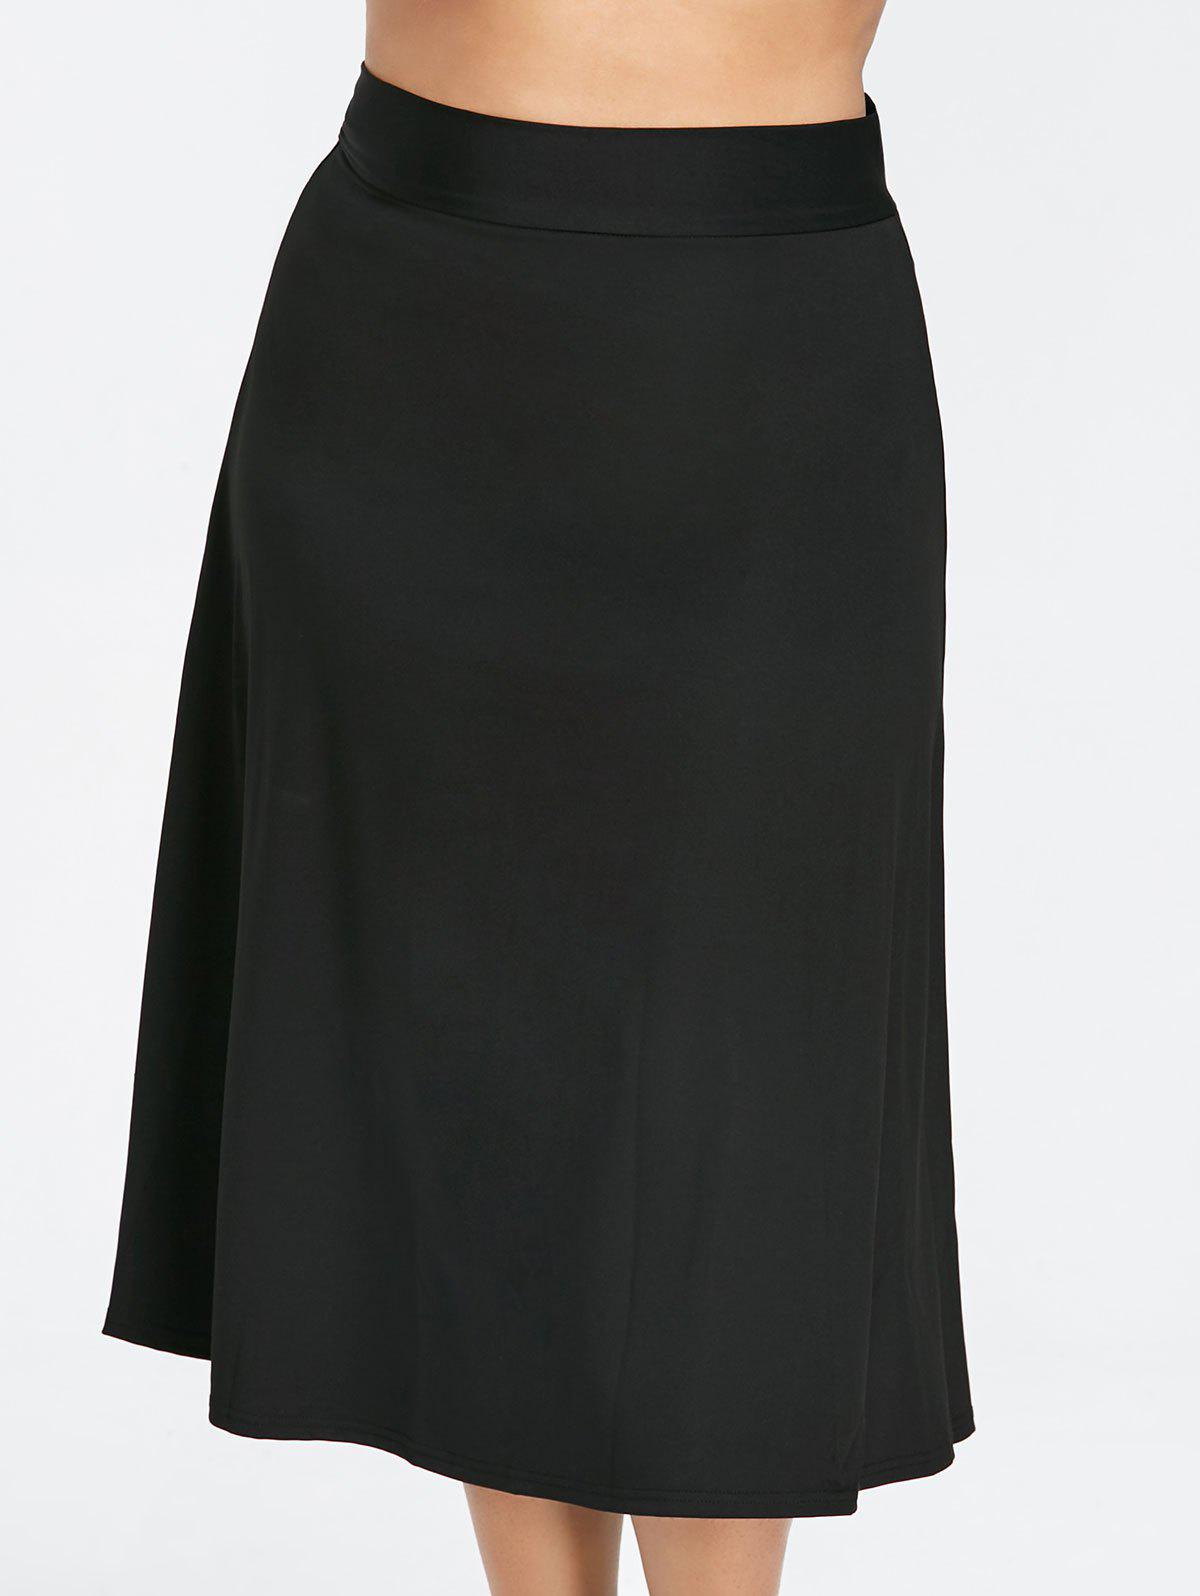 Store Back Zipper Plus Size Midi skirt